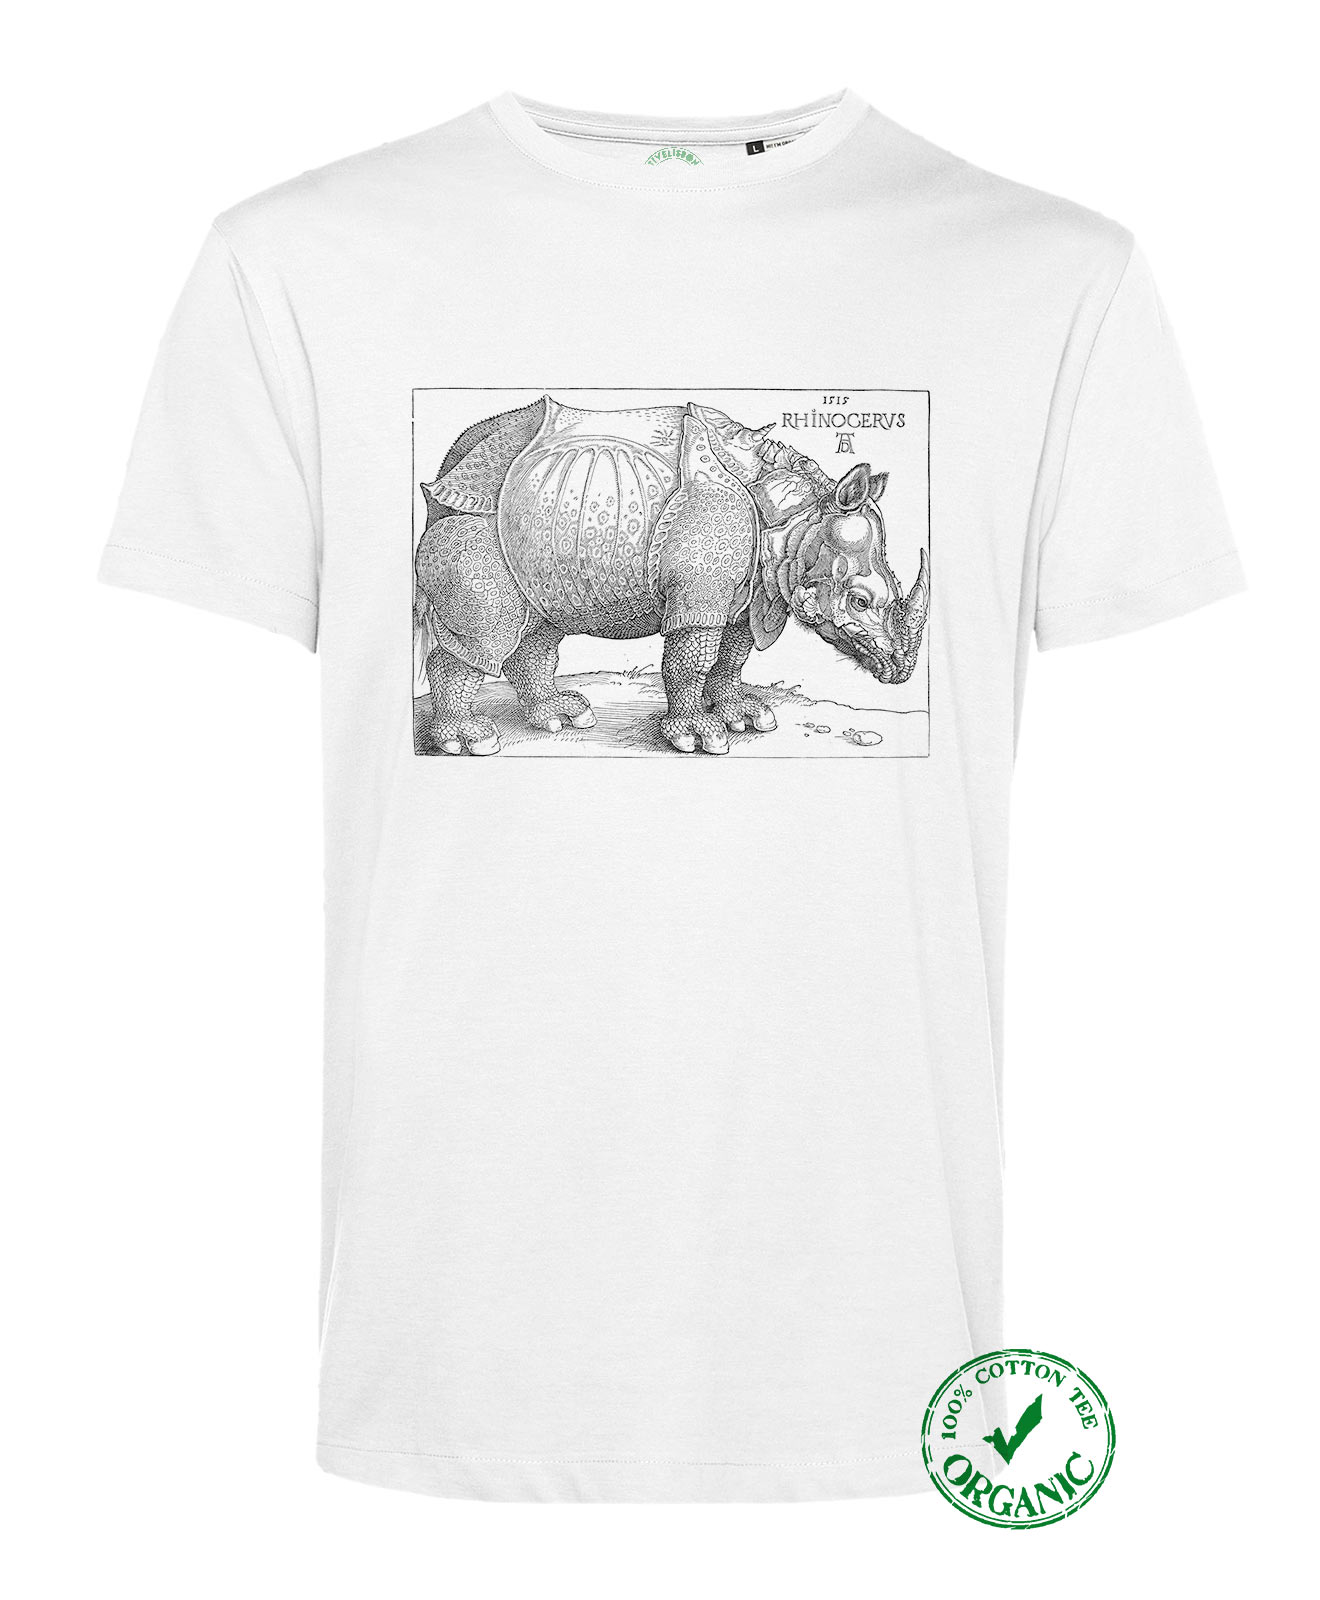 Rhinocerus Recycled Cotton T-shirt